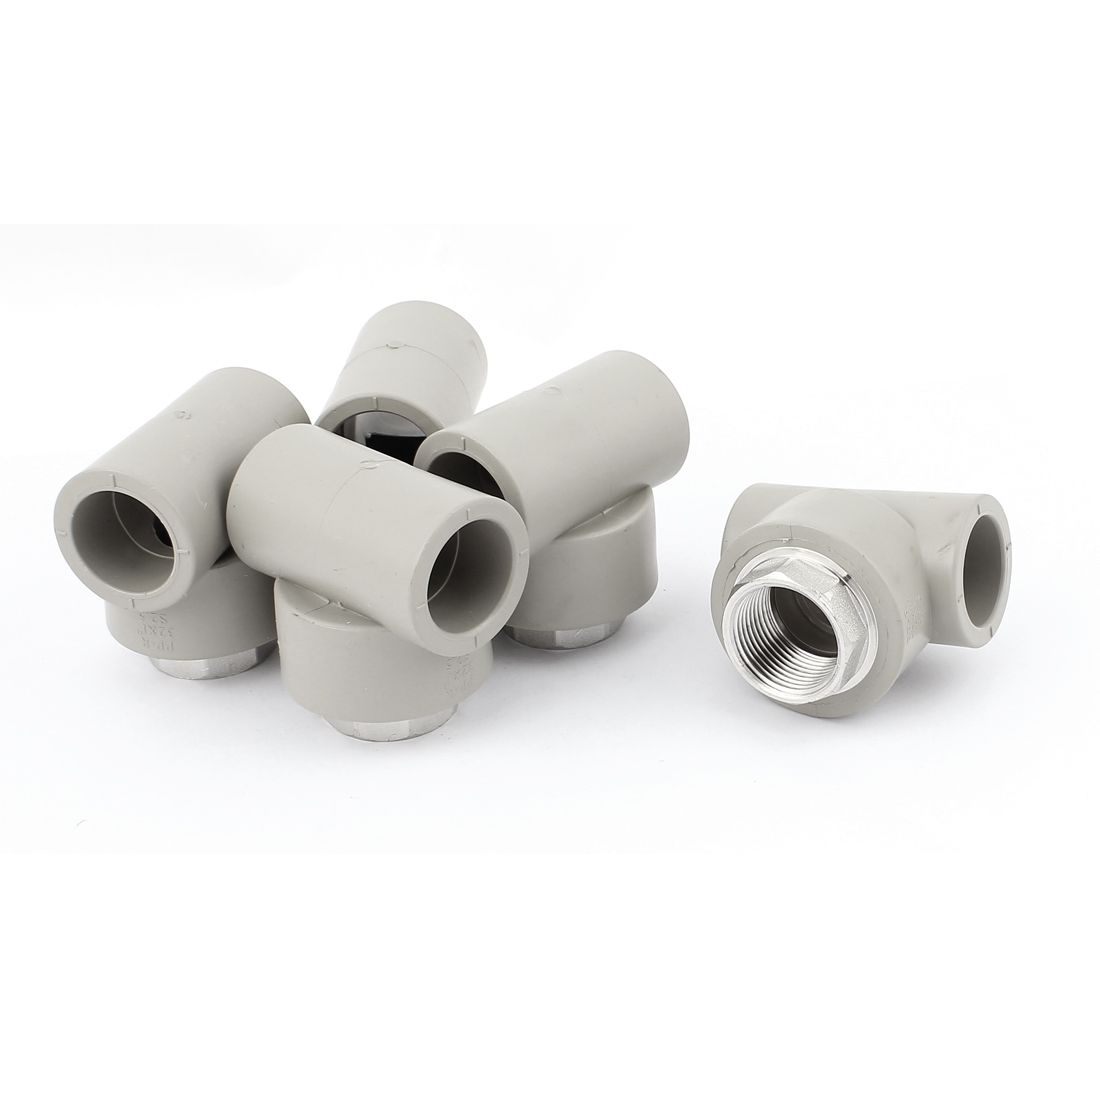 5pcs 1BSP Female Thread T Shaped PPR Pipe Fitting Adapter Connector